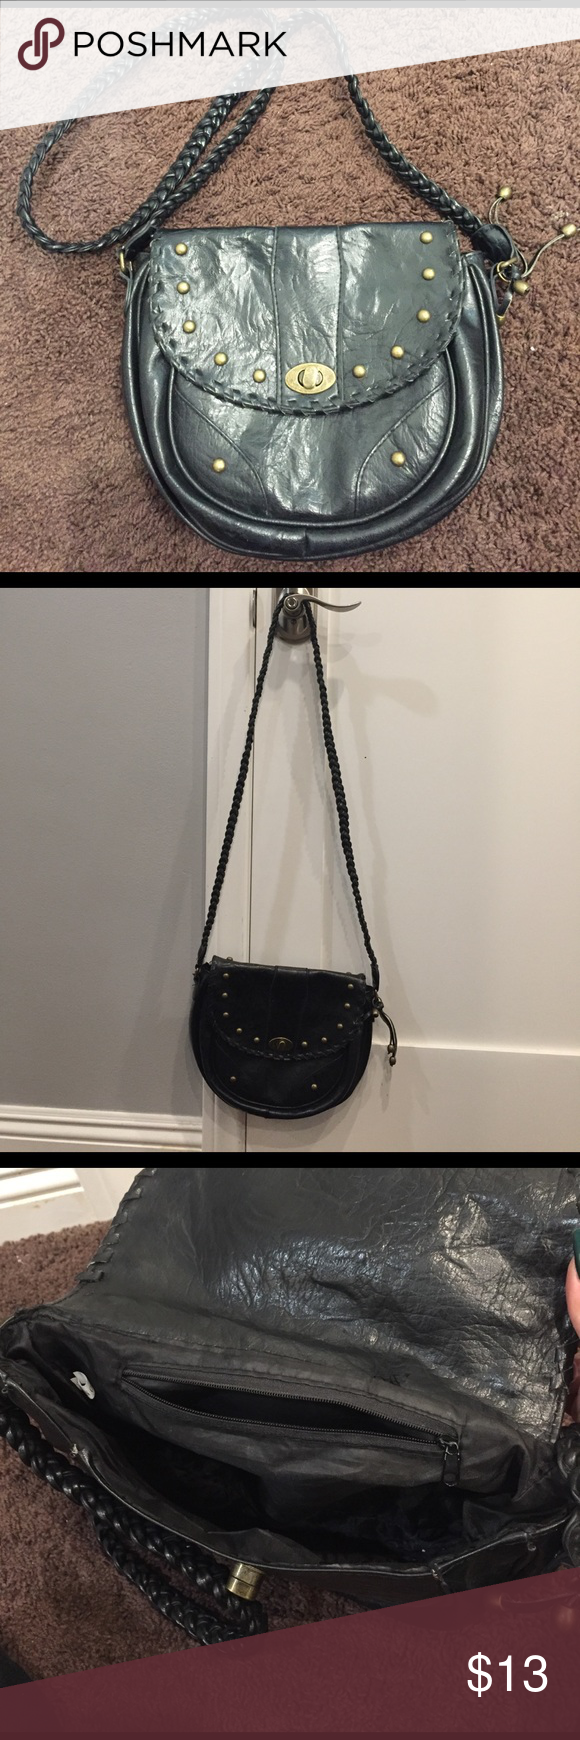 Cross body bag Bought this from tillys a while ago, lightly used and  in Great condition! Purse is lined with one zipper pocket inside Bags Crossbody Bags